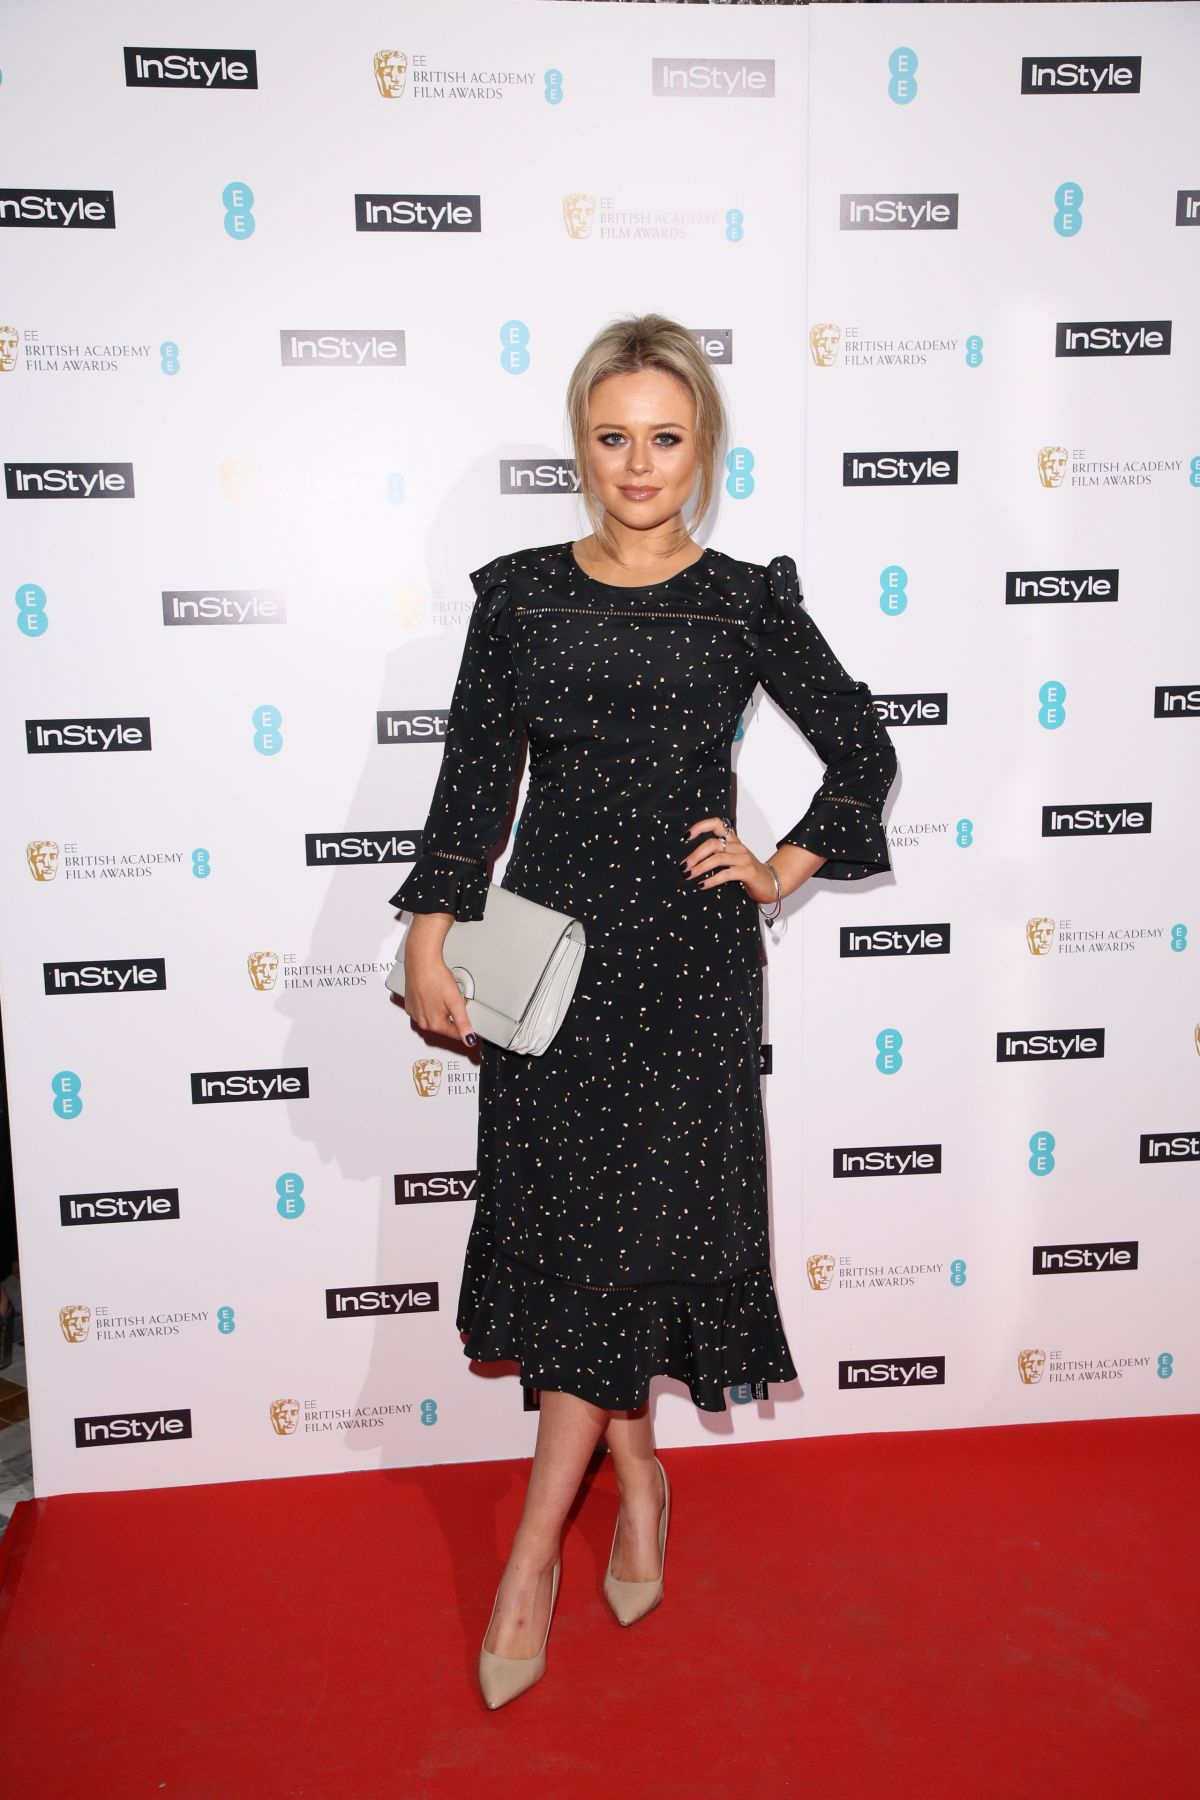 EMILY ATACK at Instyle EE Rising Star Party in London 02/01/2017